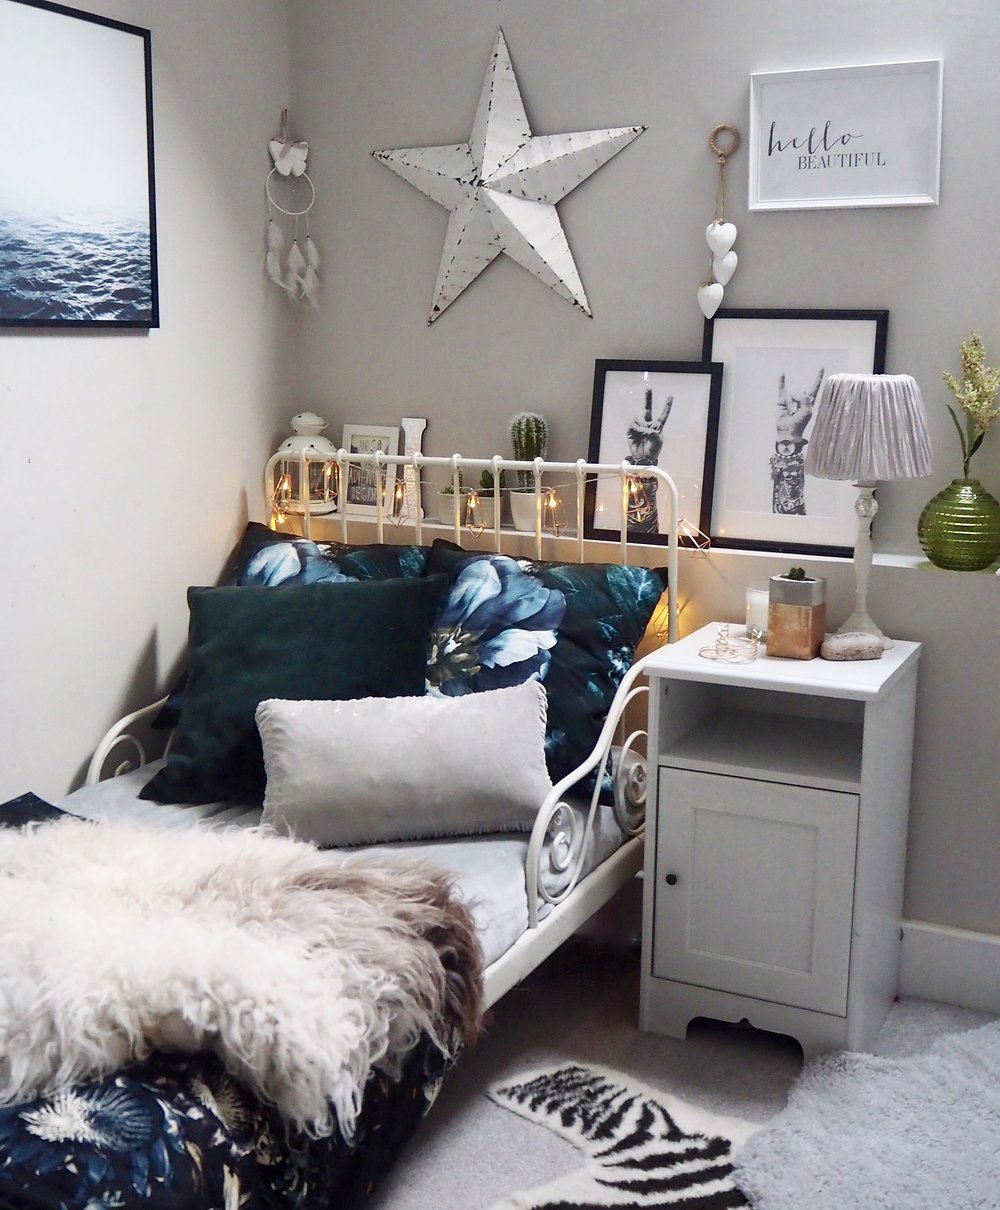 Scandi, hygge bedroom. Cosy bedroom